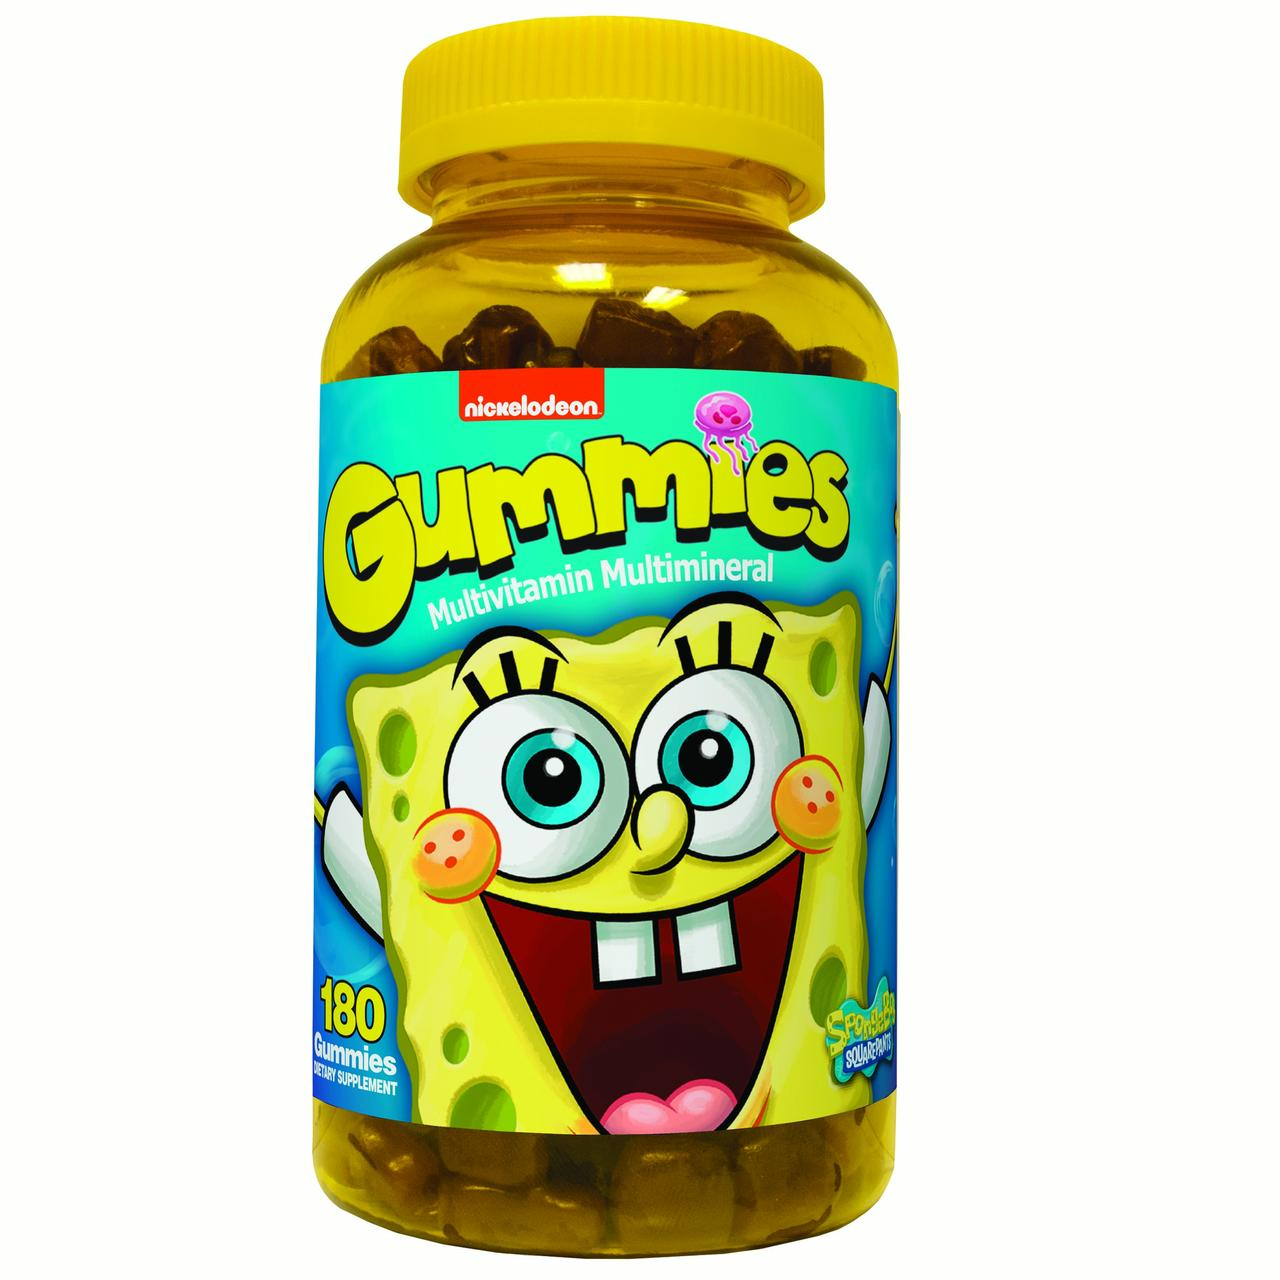 Nickelodeon Spongebob Multivitamin Multimineral Gummies, 180 count